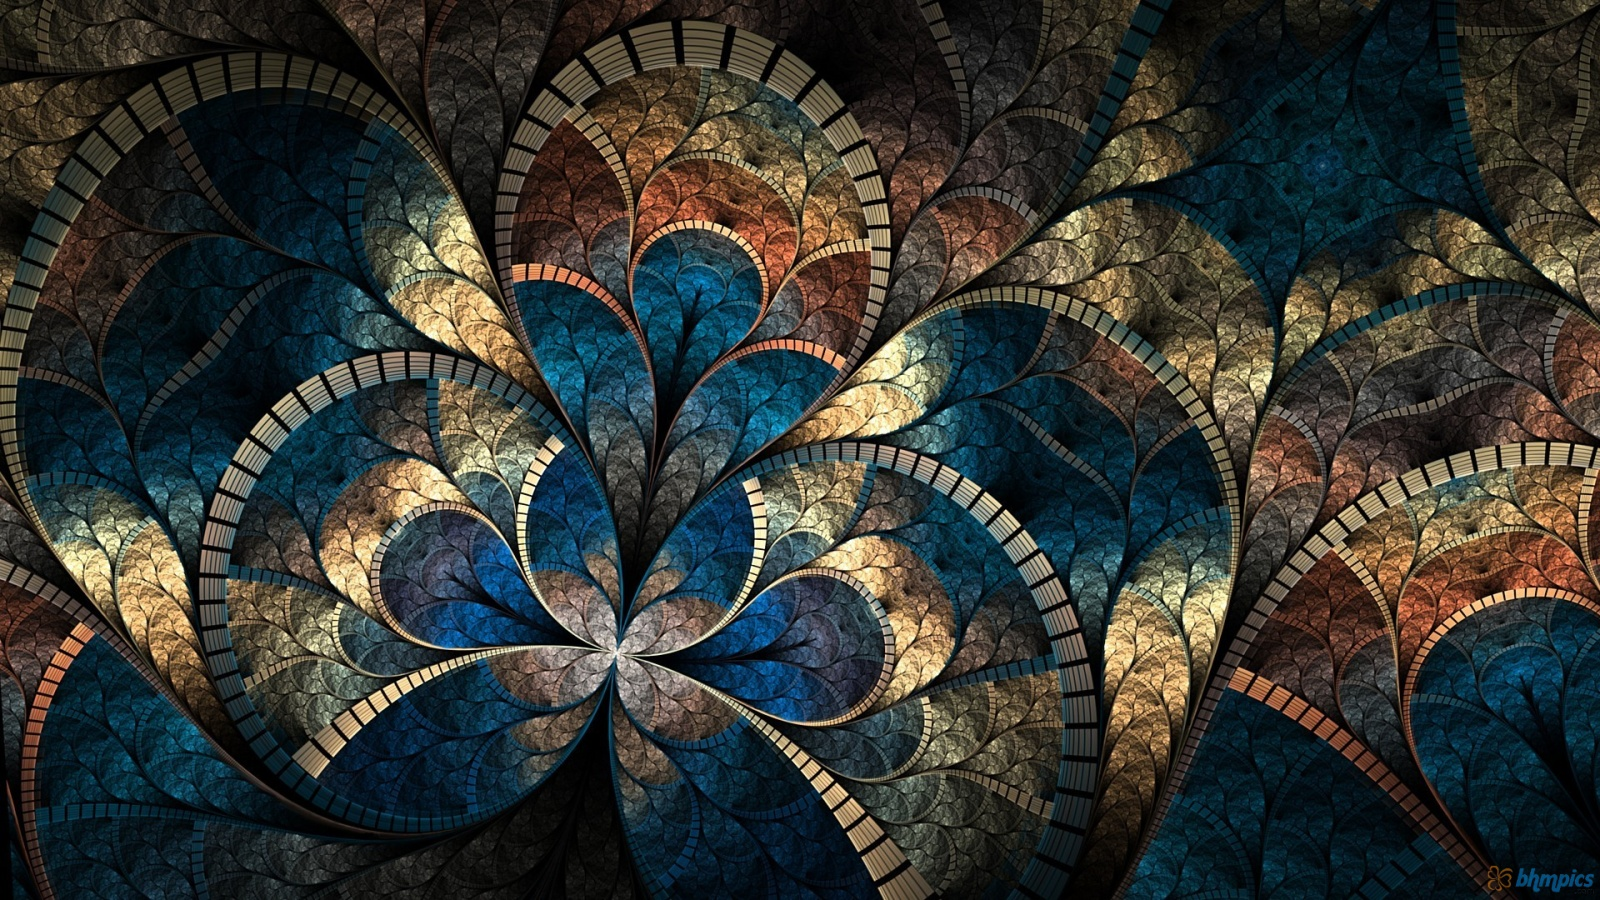 Fractal abstract patterns